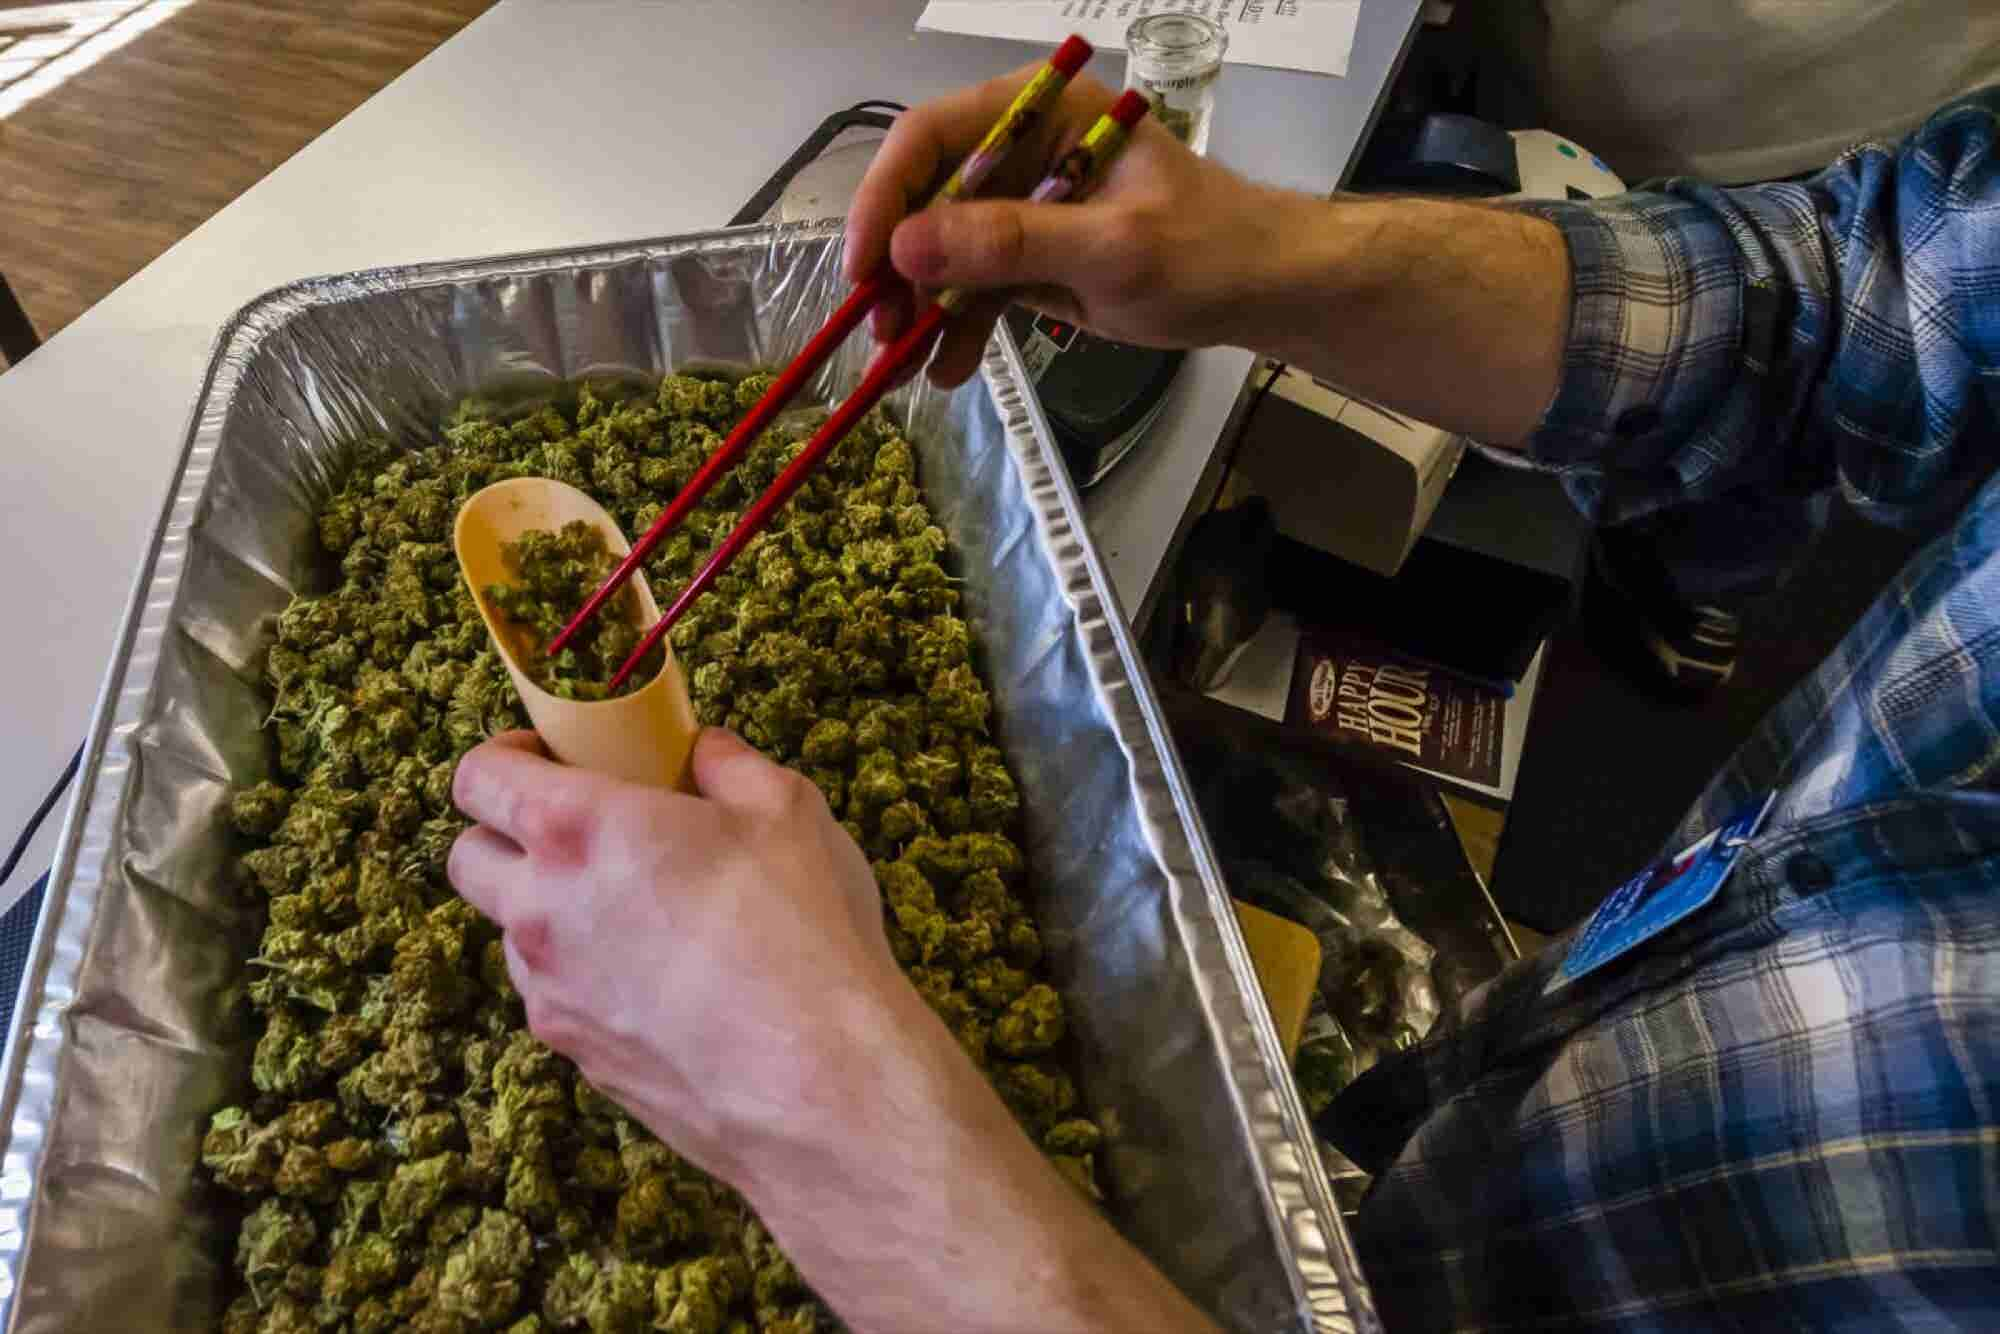 A Study of One Colorado County Finds Legal Marijuana has More Benefits Than Problems